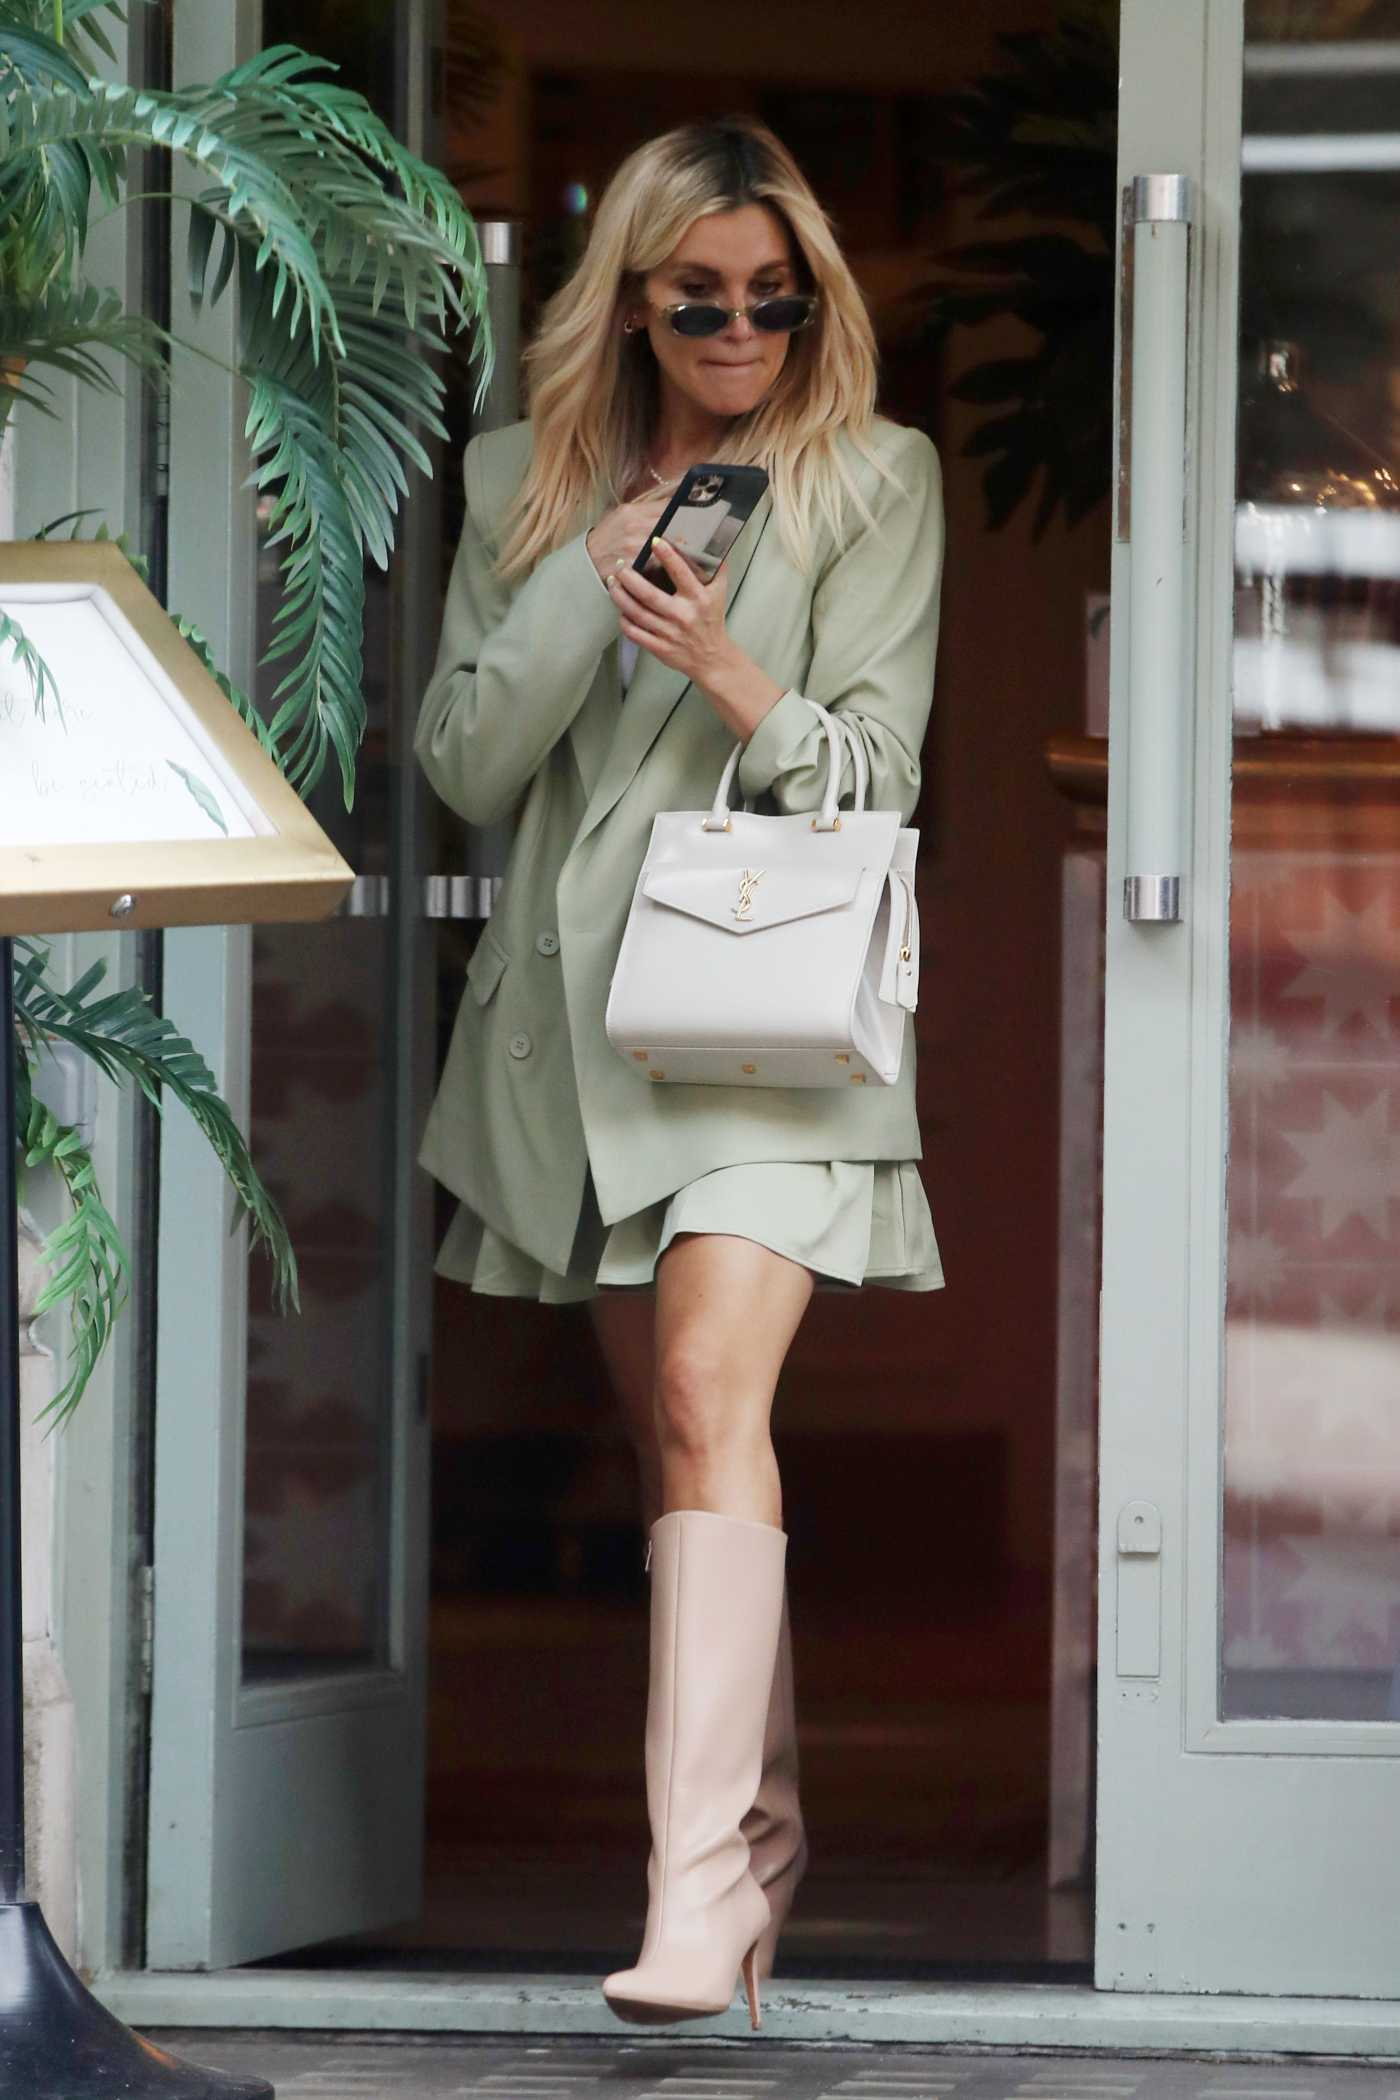 Ashley Roberts in an Olive Suit Leaves Lunch in Chelsea, London 06/24/2021